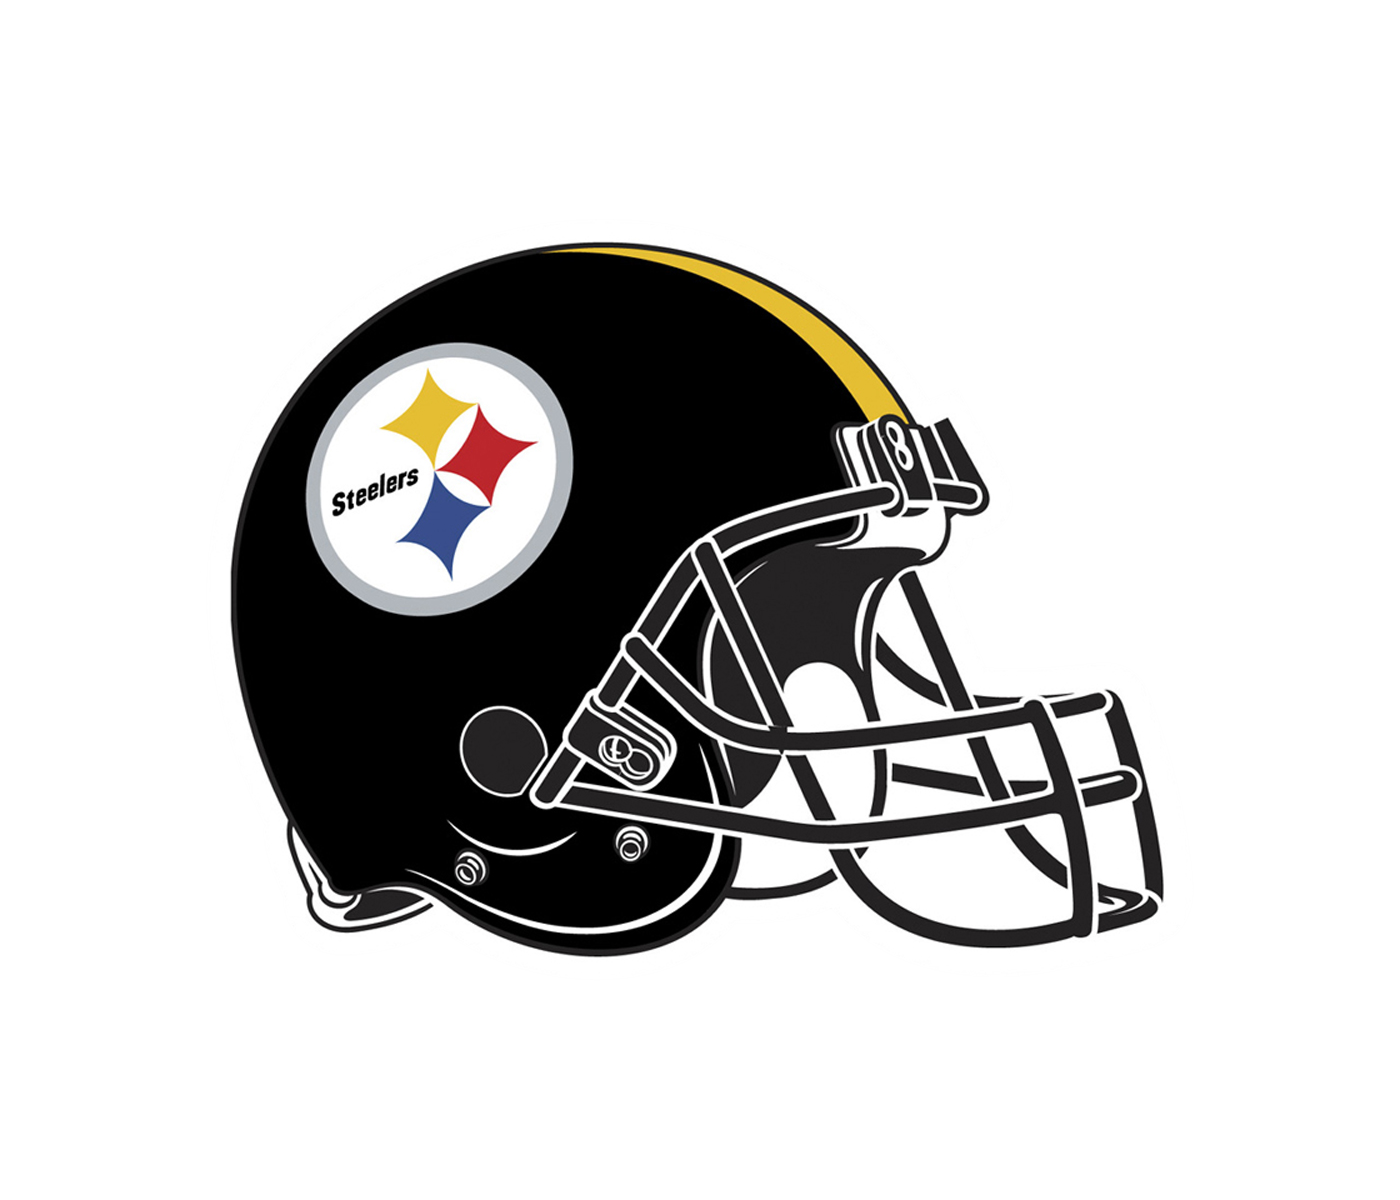 Steelers football helmet clipart svg free stock Pittsburgh Steelers Logo PNG Transparent & SVG Vector - Freebie Supply svg free stock